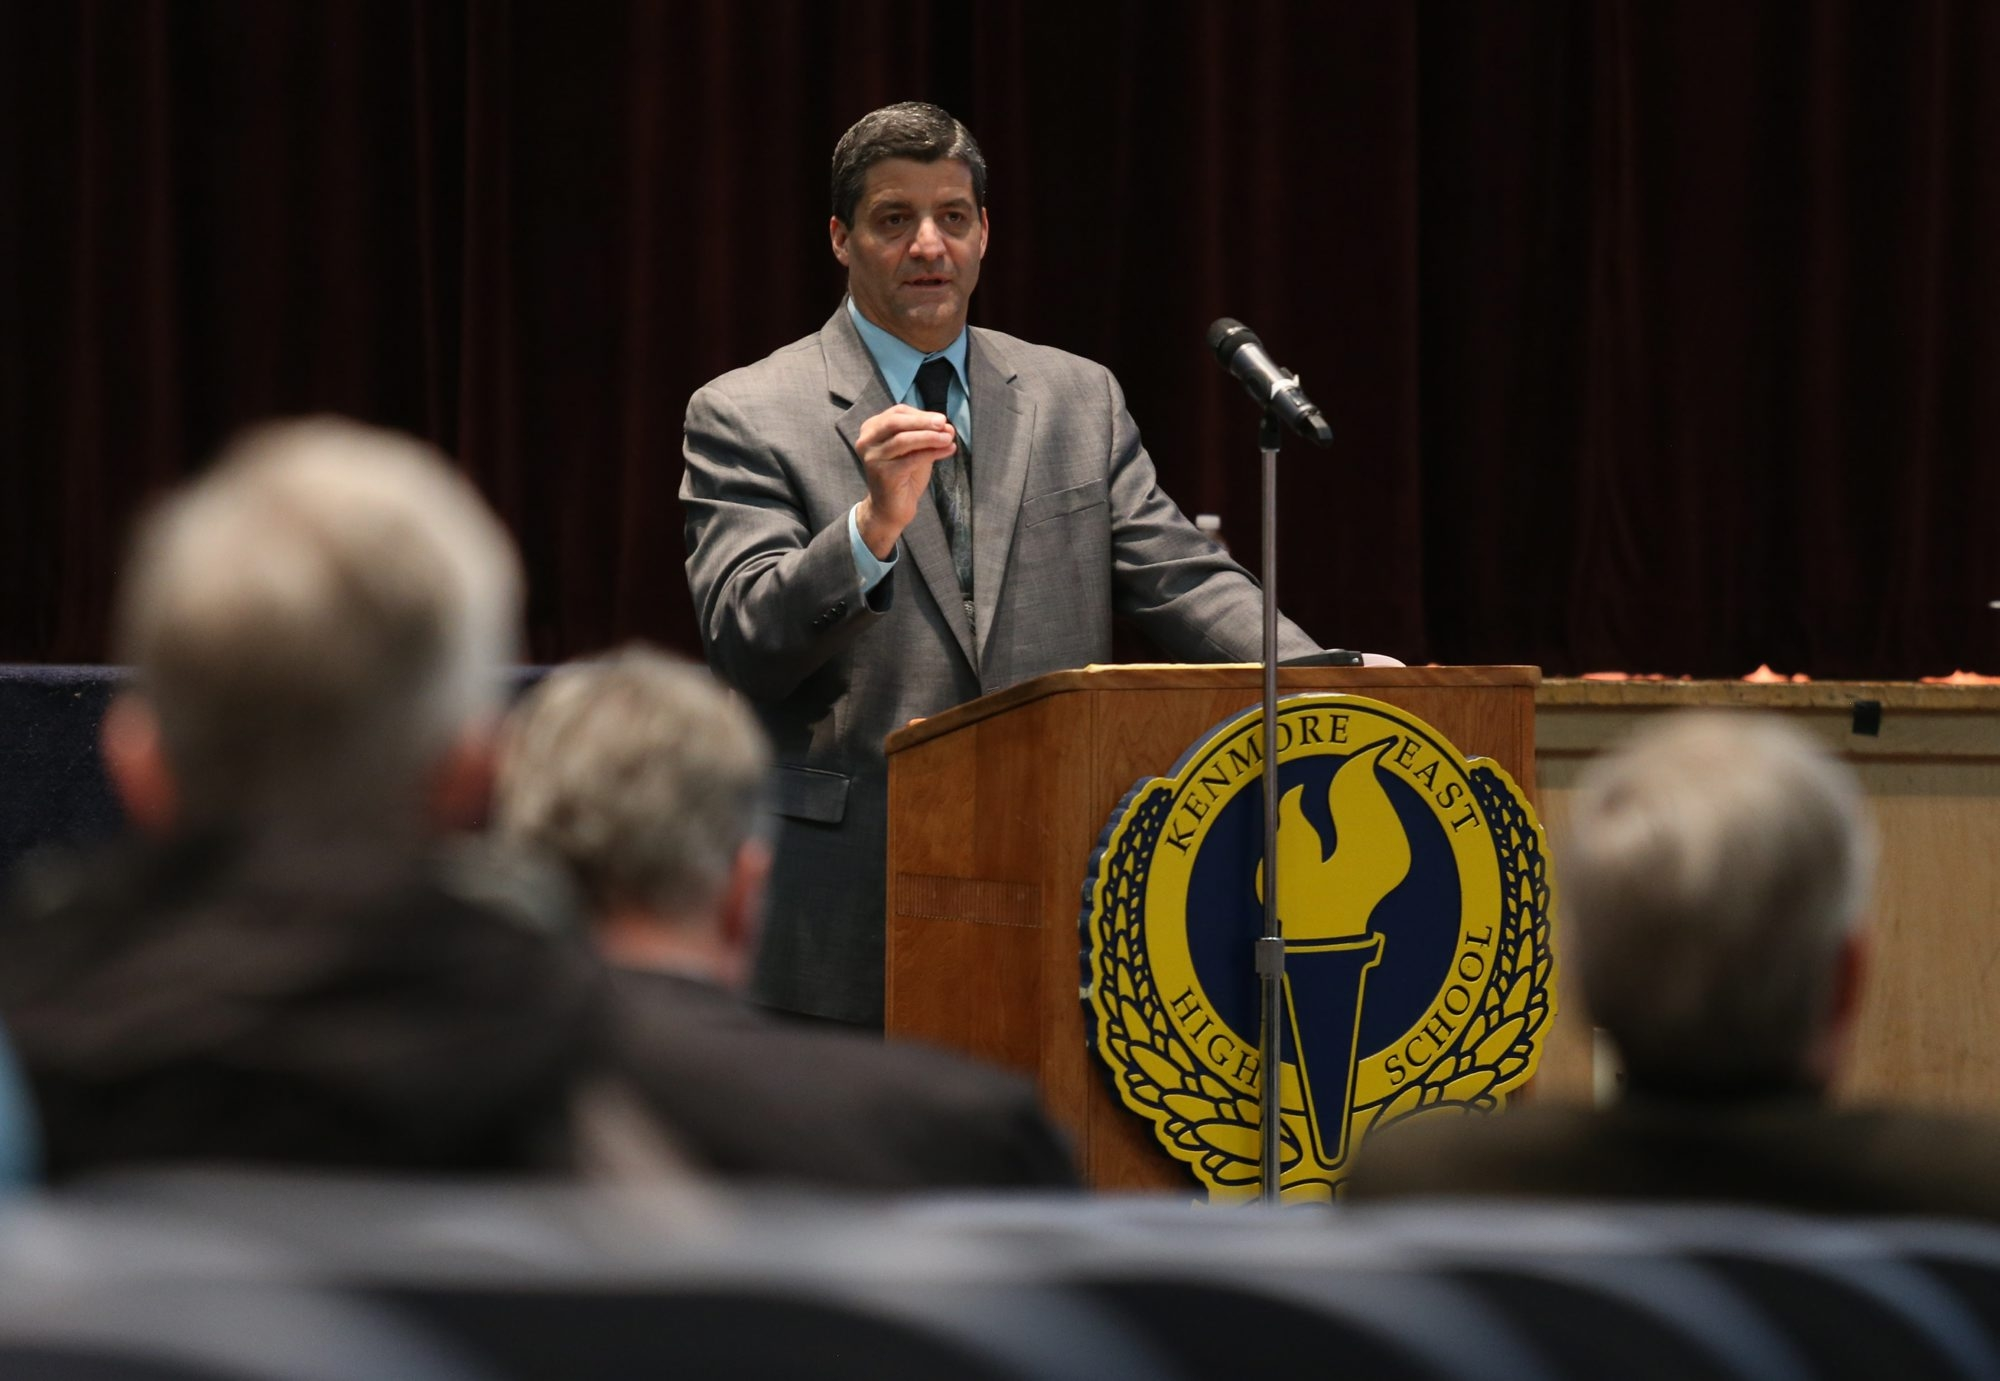 Superintendent of Schools Mark P. Mondanaro speaks during the fourth public hearing to present the findings of a Pre-K through Grade 12 reorganization study in the auditorium of Kenmore East High School in the Town of Tonawanda, Monday, March 31, 2014.  (Charles Lewis/Buffalo News)